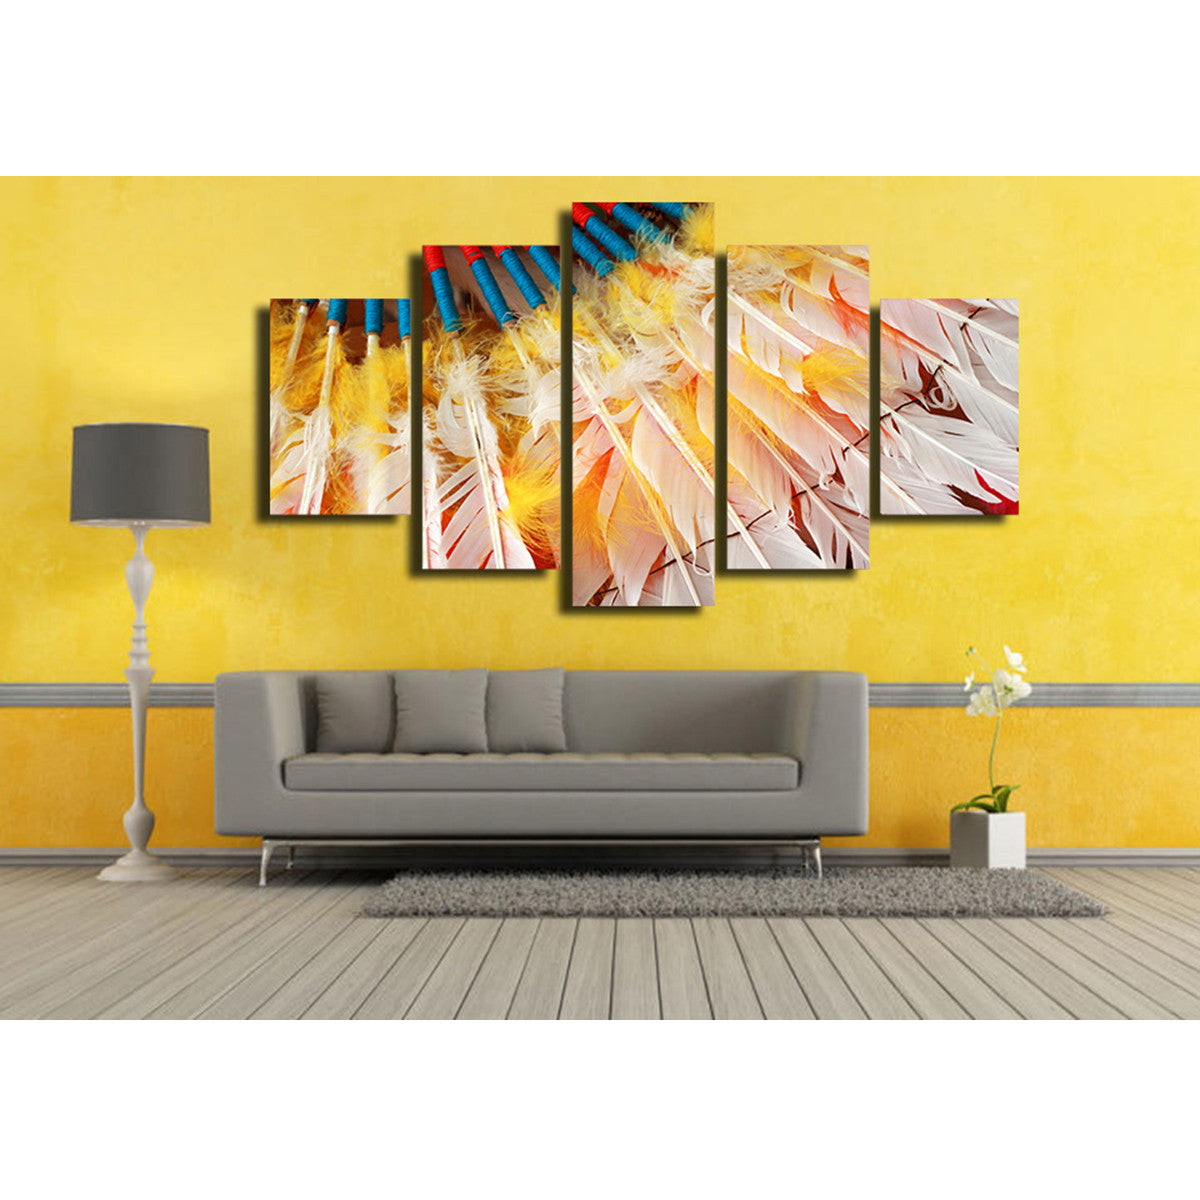 Native Feathers 5 Piece Canvas